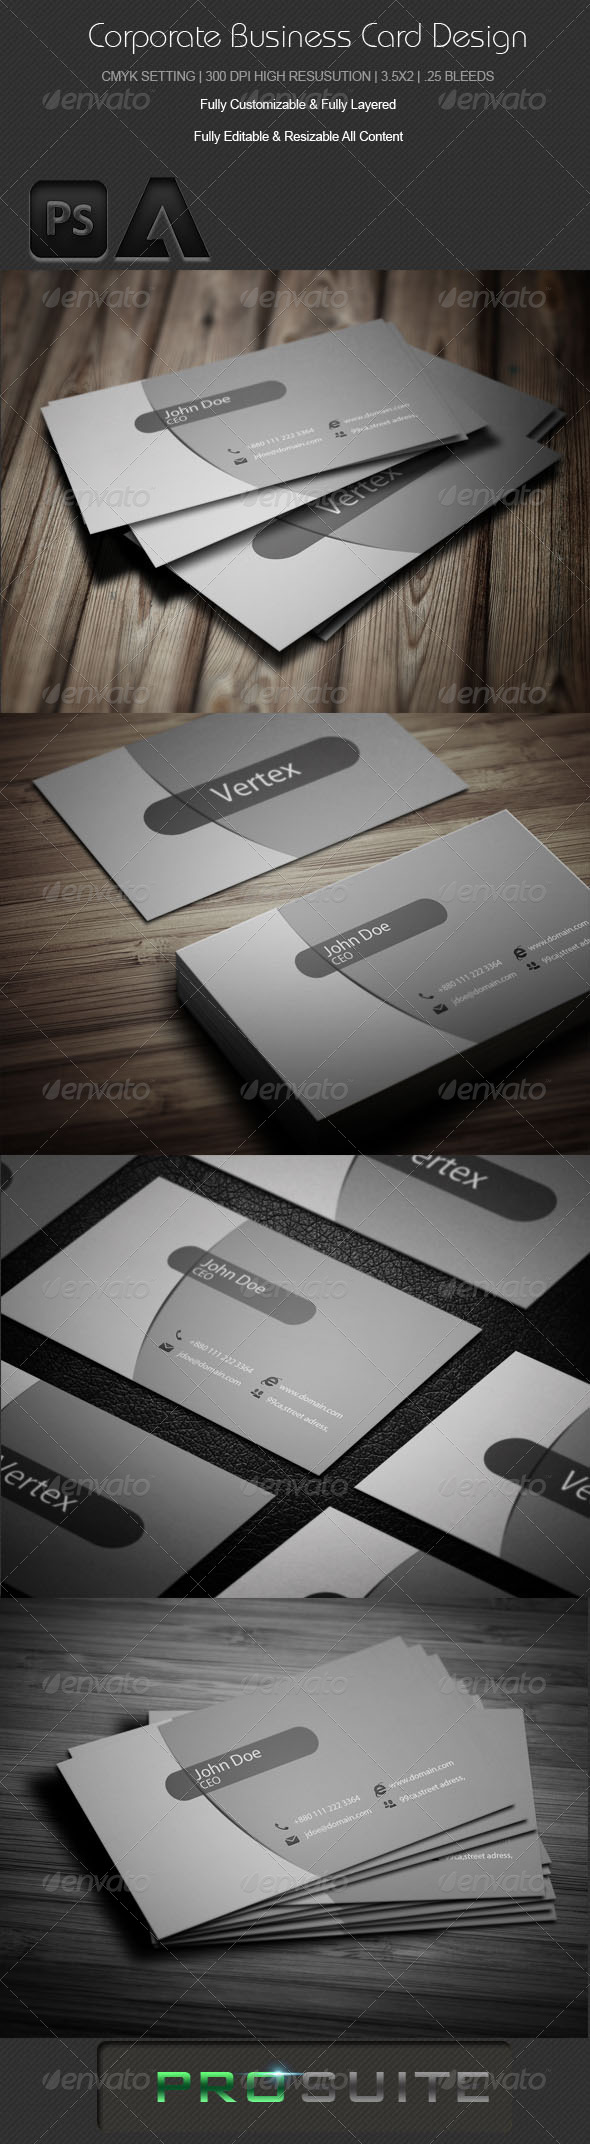 GraphicRiver Corporate Business Card Design 3 4937675